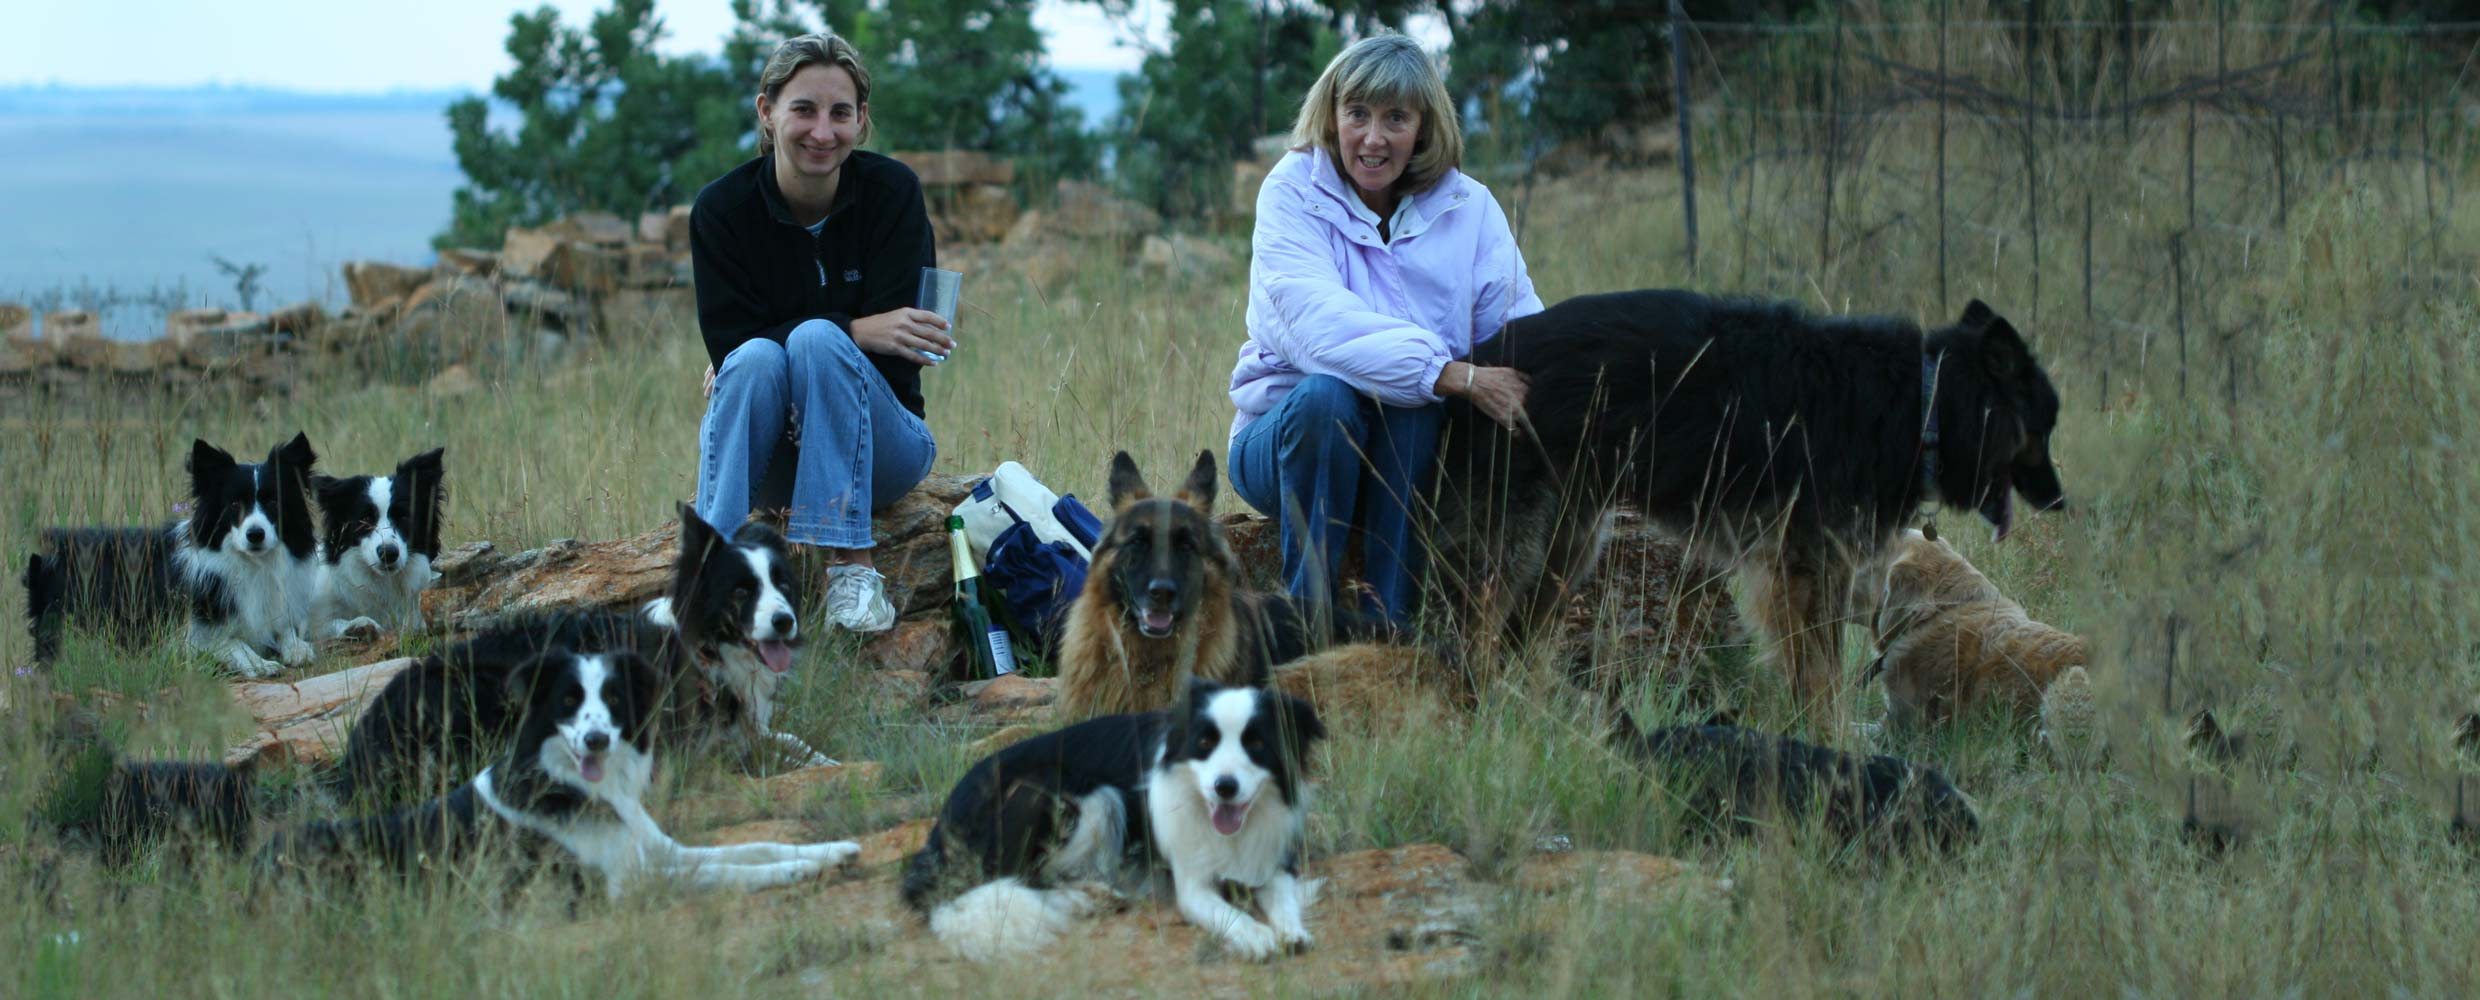 Alison and Denise Roets with their dogs in Magaliesburg